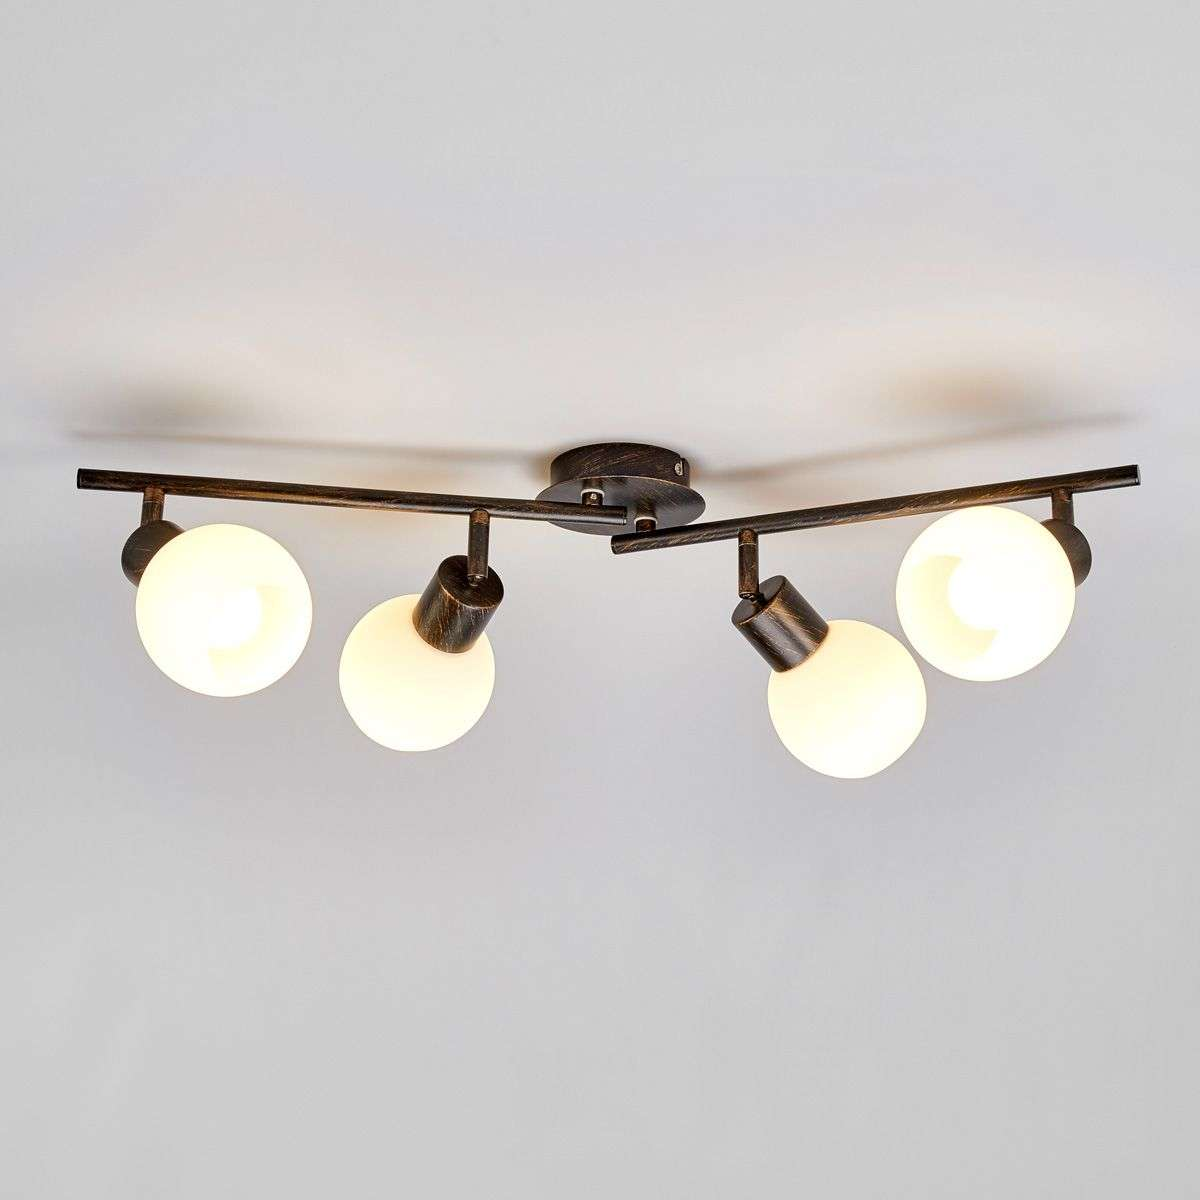 Merveilleux Kitchen Ceiling Light Elaina In Auburn, 4 Bulb